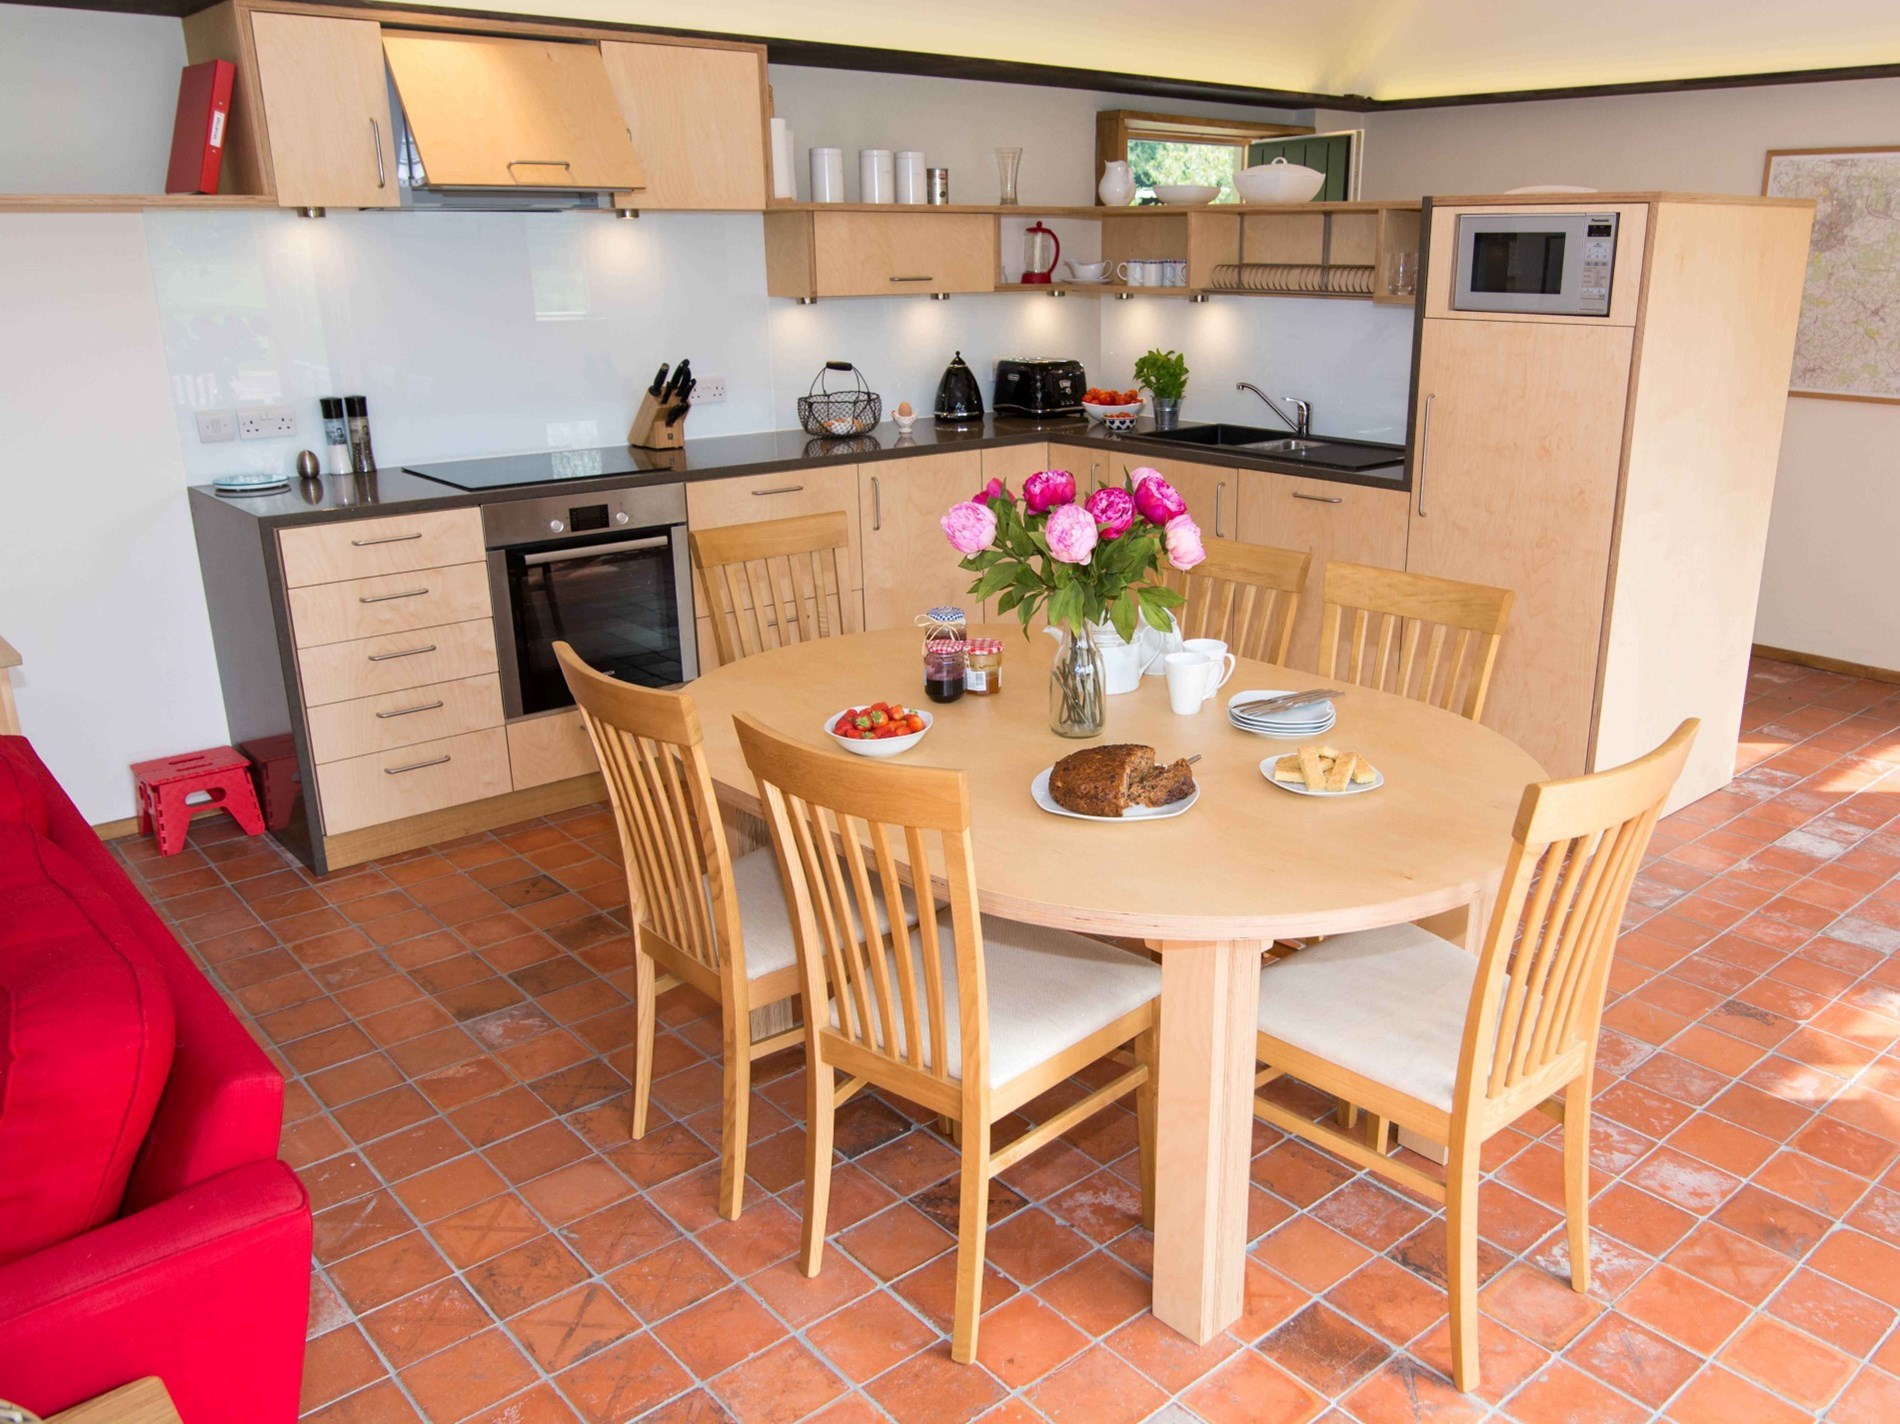 Family meals in the dining area by the kitchen